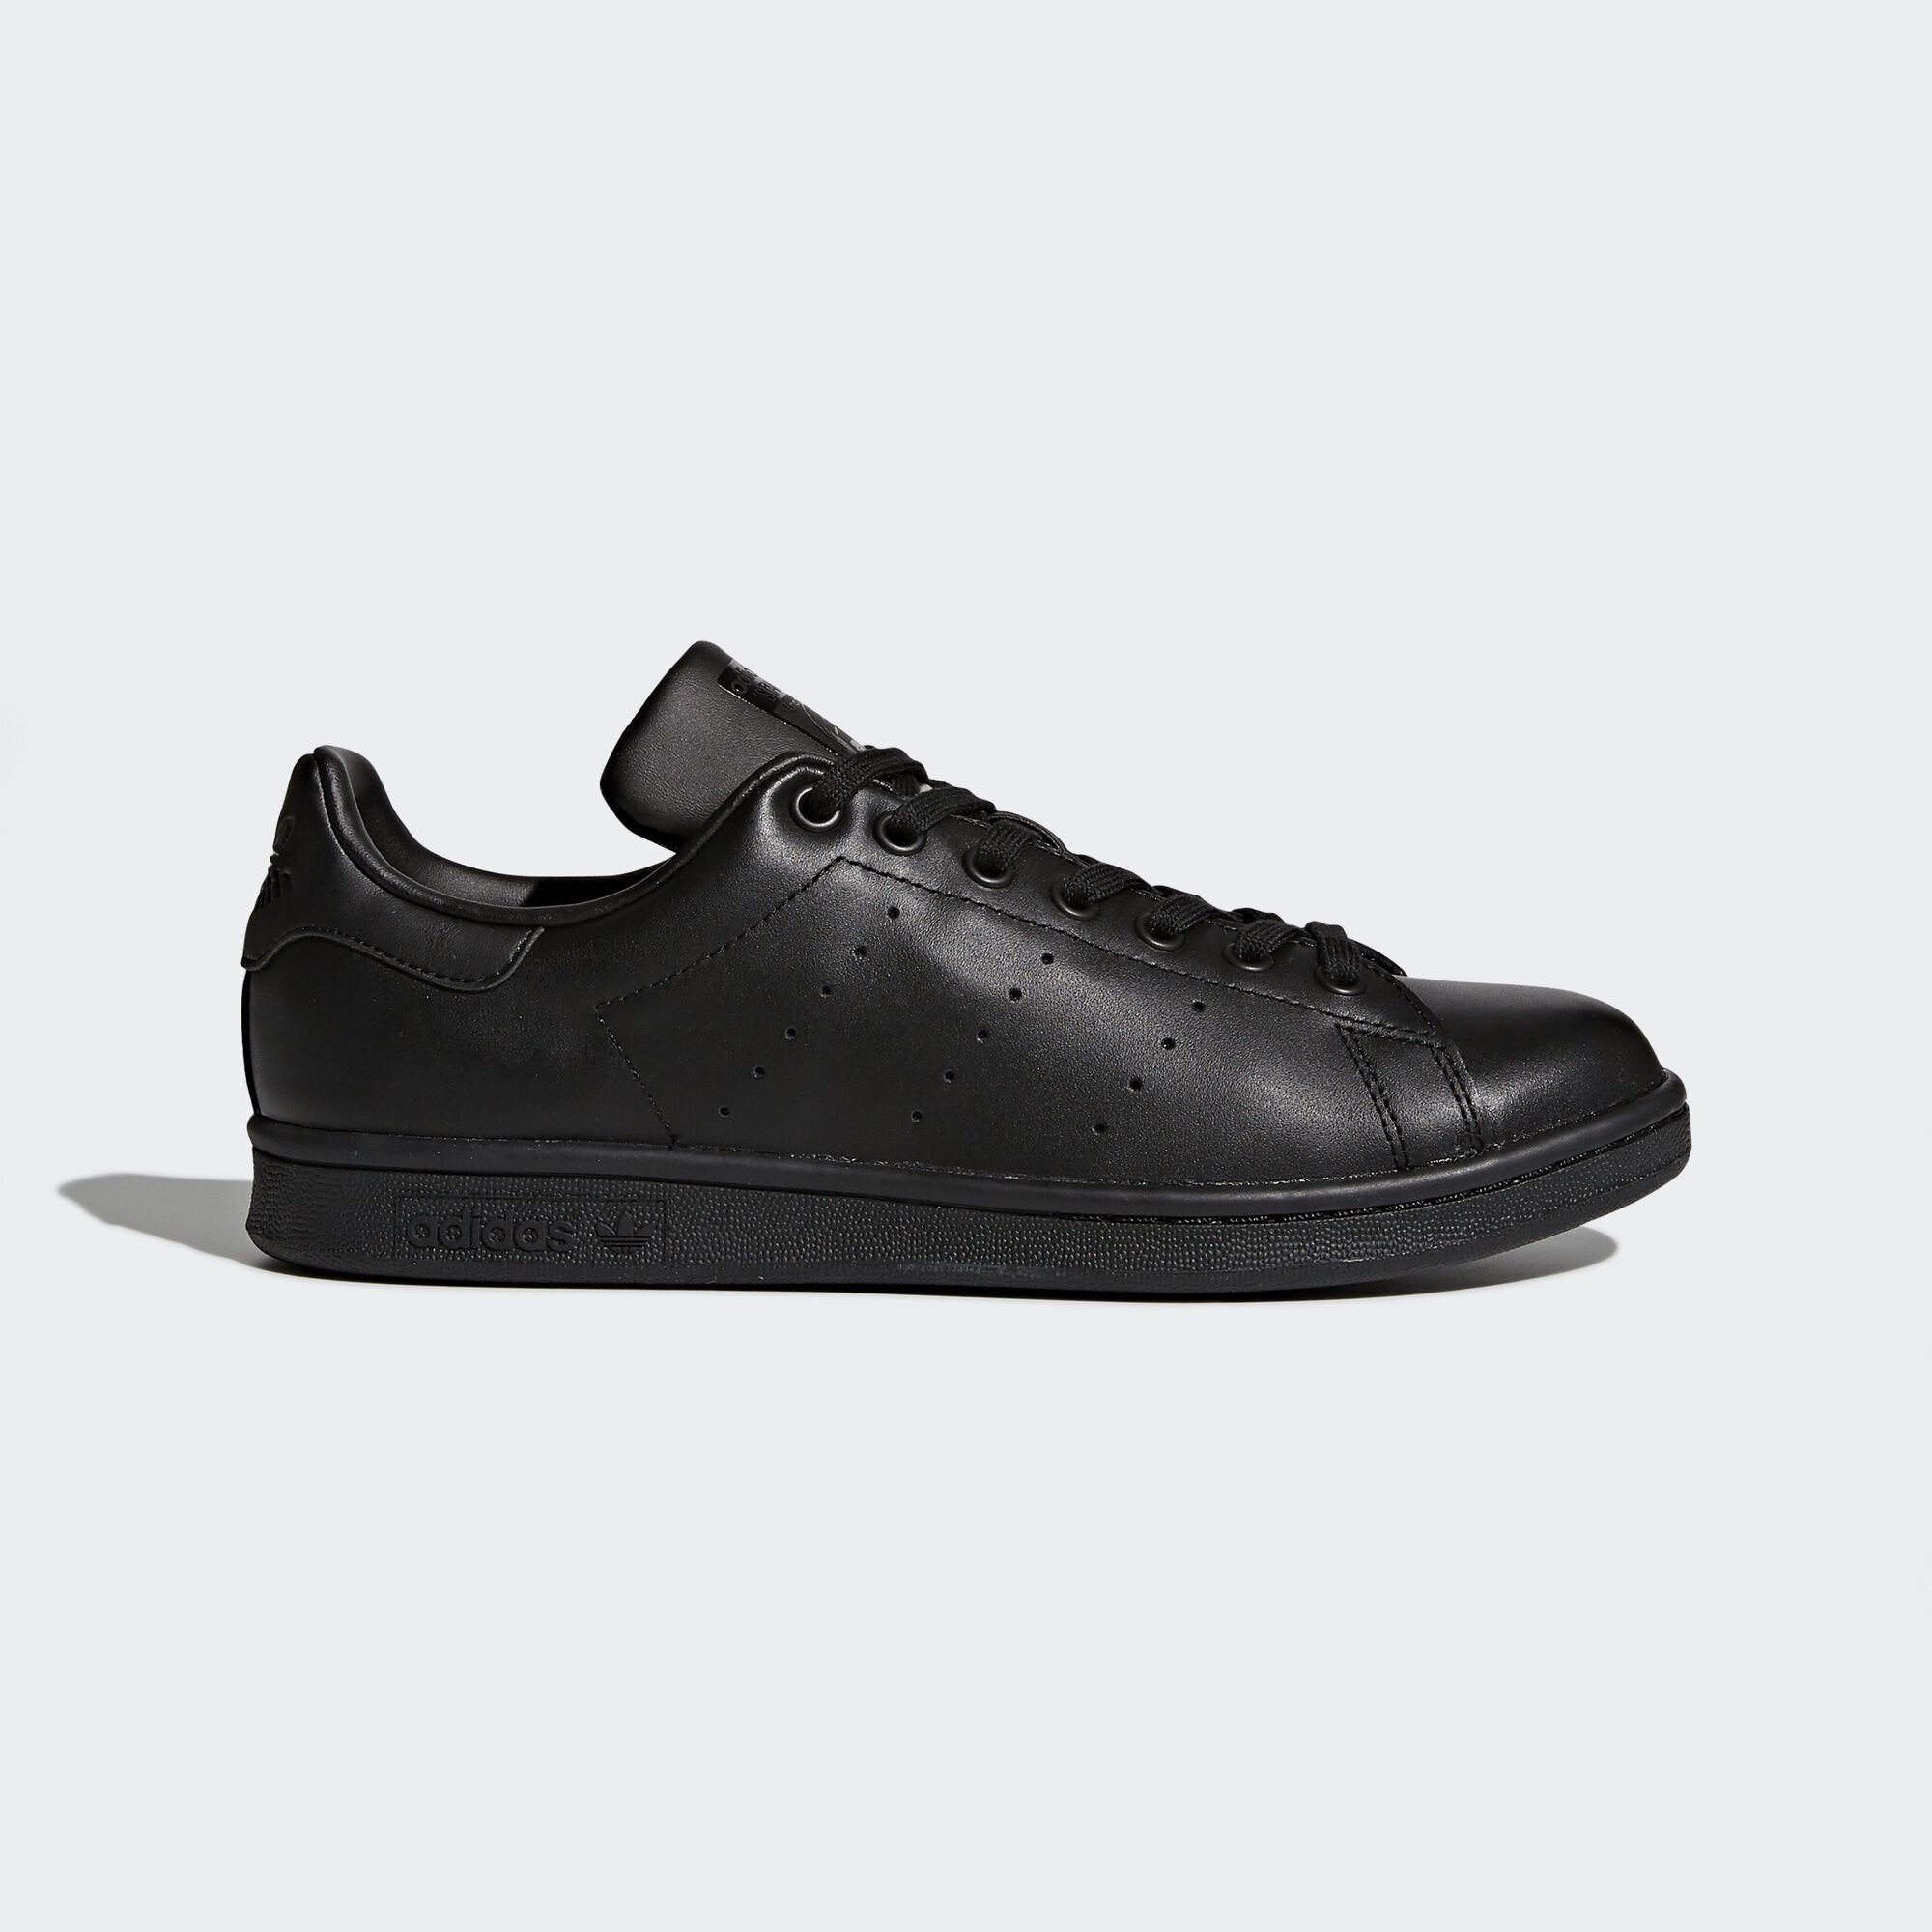 Stan Smith Adidas Black Women